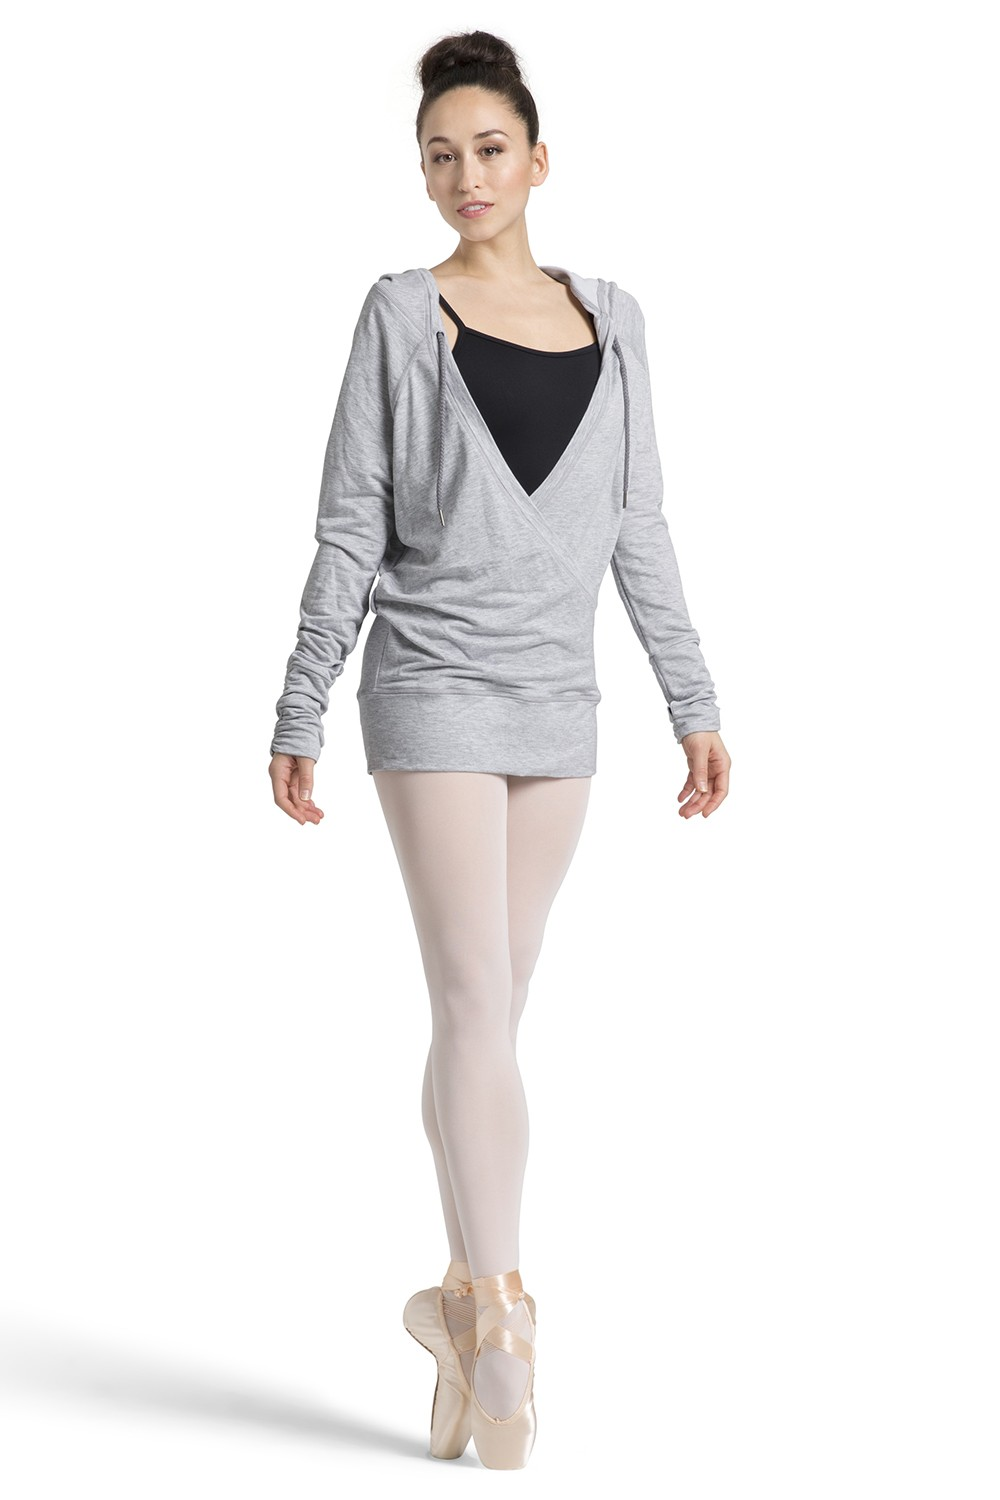 Hooded Sweater Women's Dance Warmups